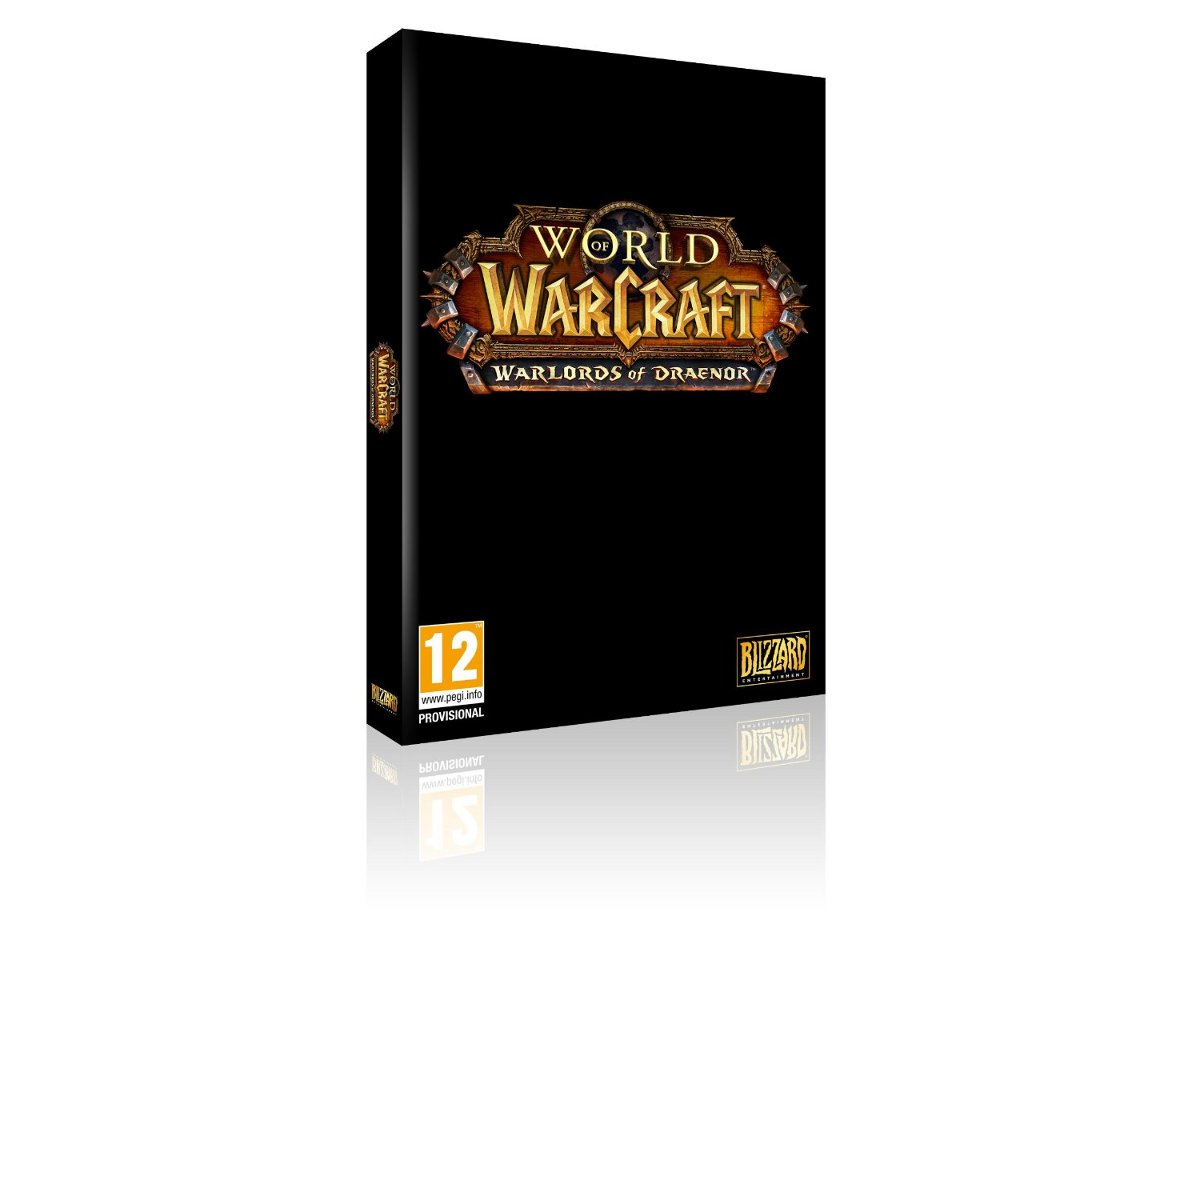 World of warcraft warlords of draenor pc jeux pc blizzard entertainment sur - World of warcraft sur console ...